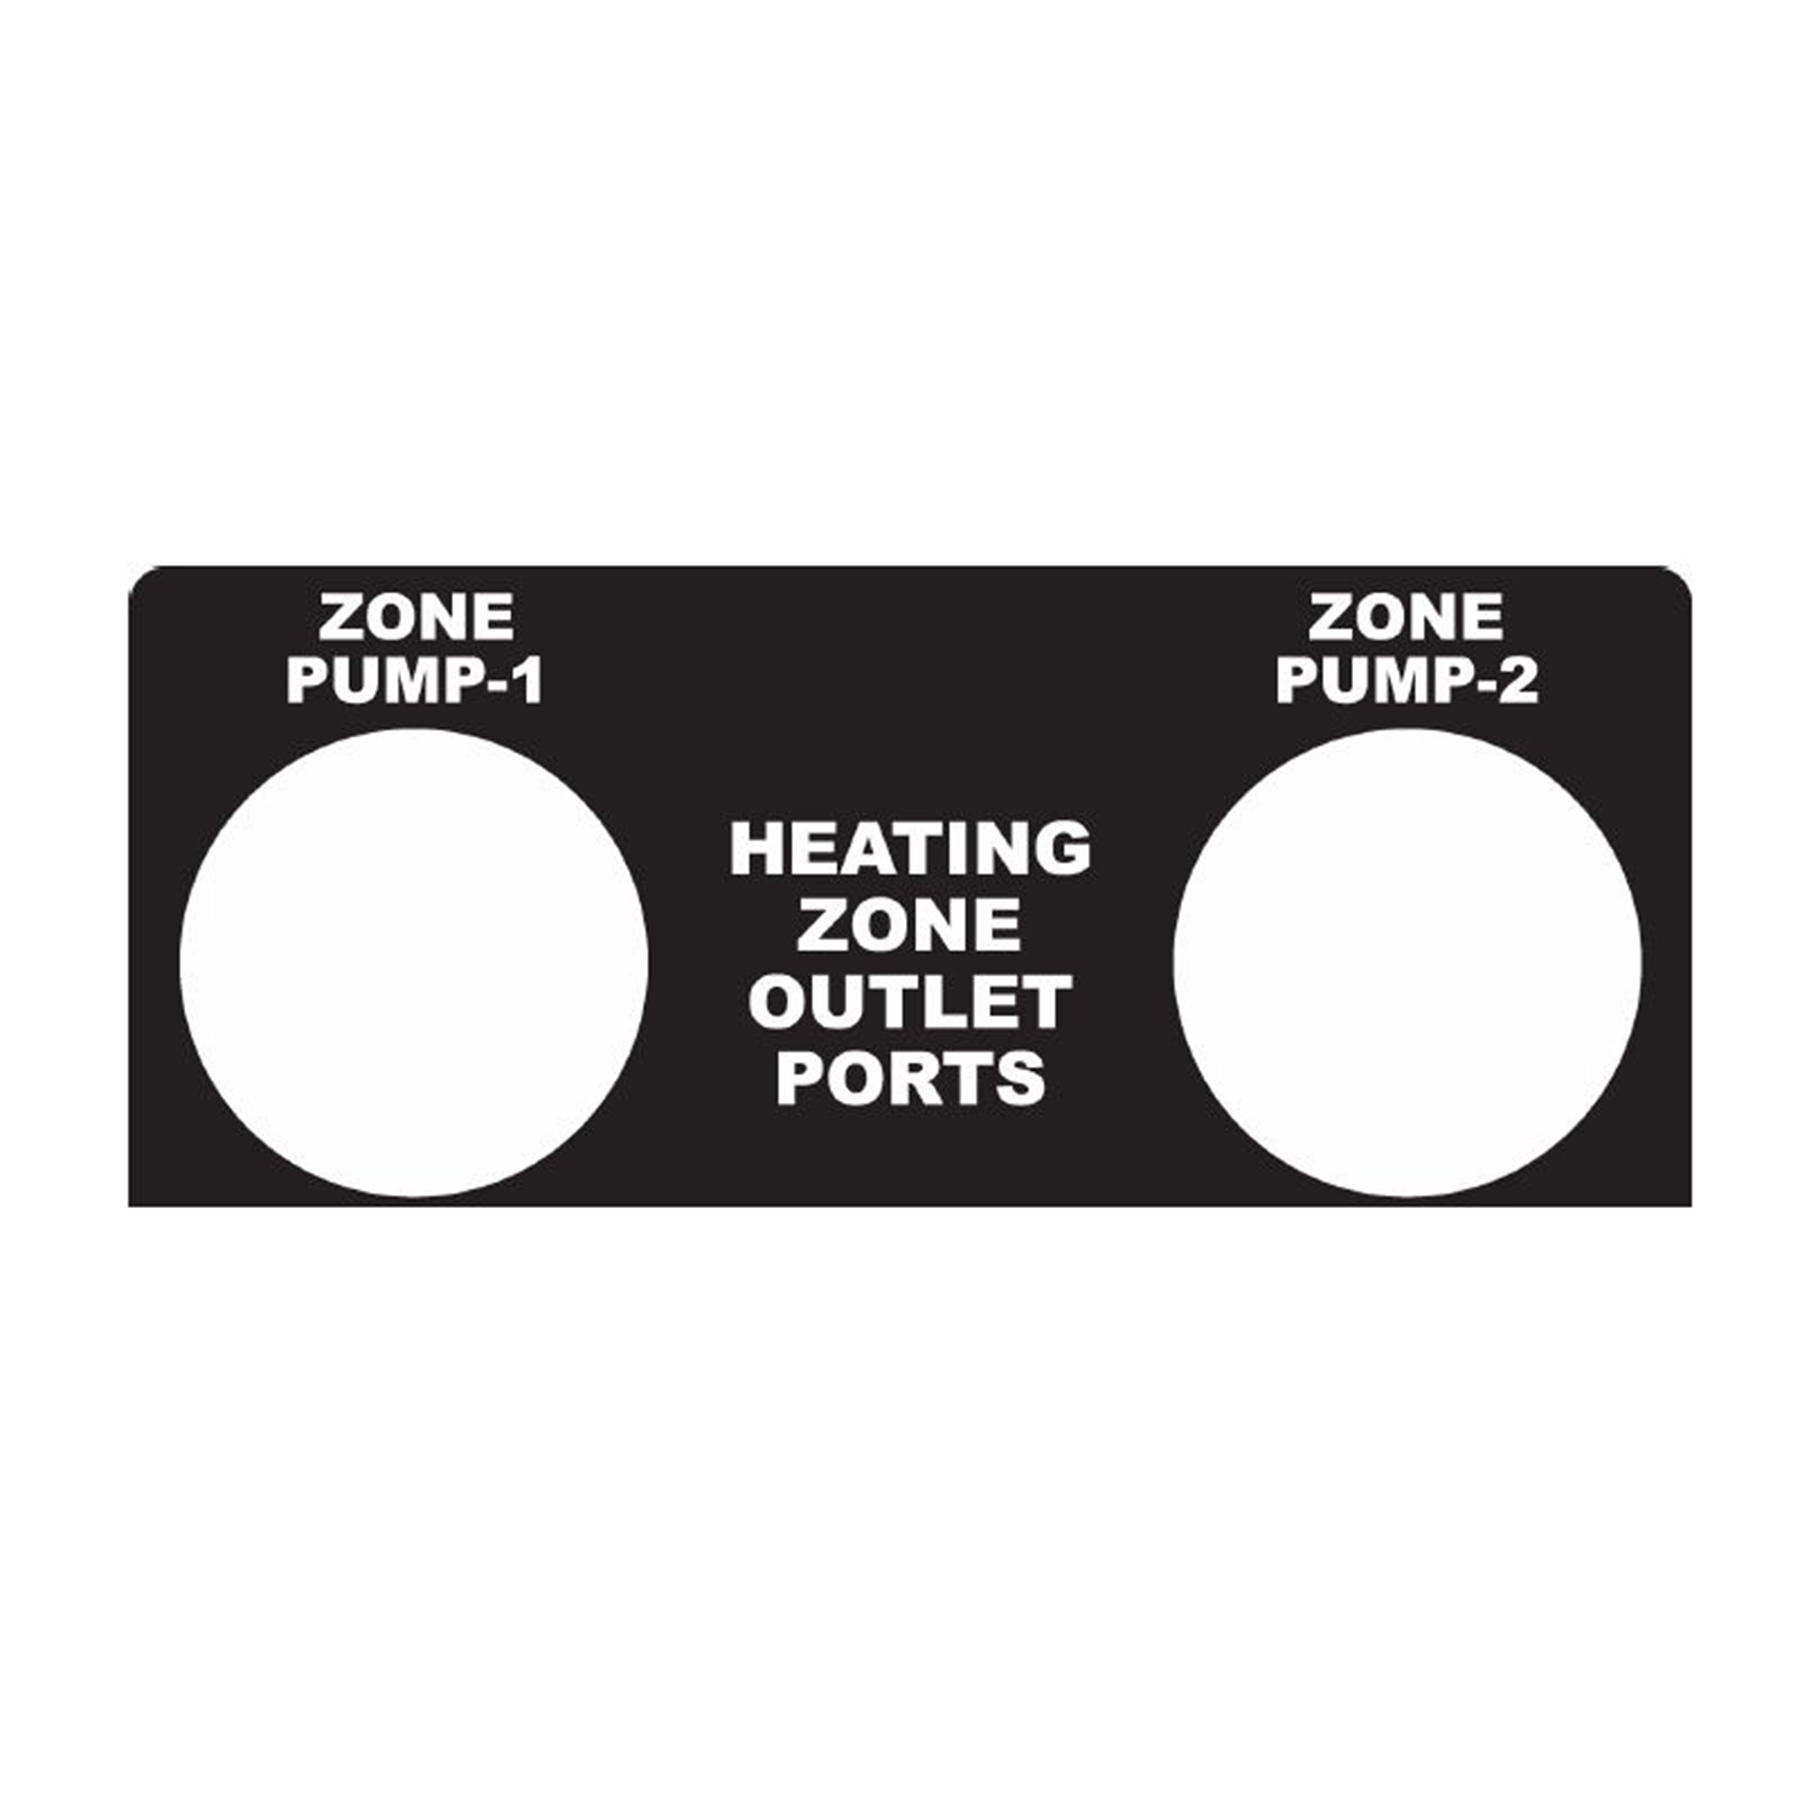 450D Zone Outlet Ports Label